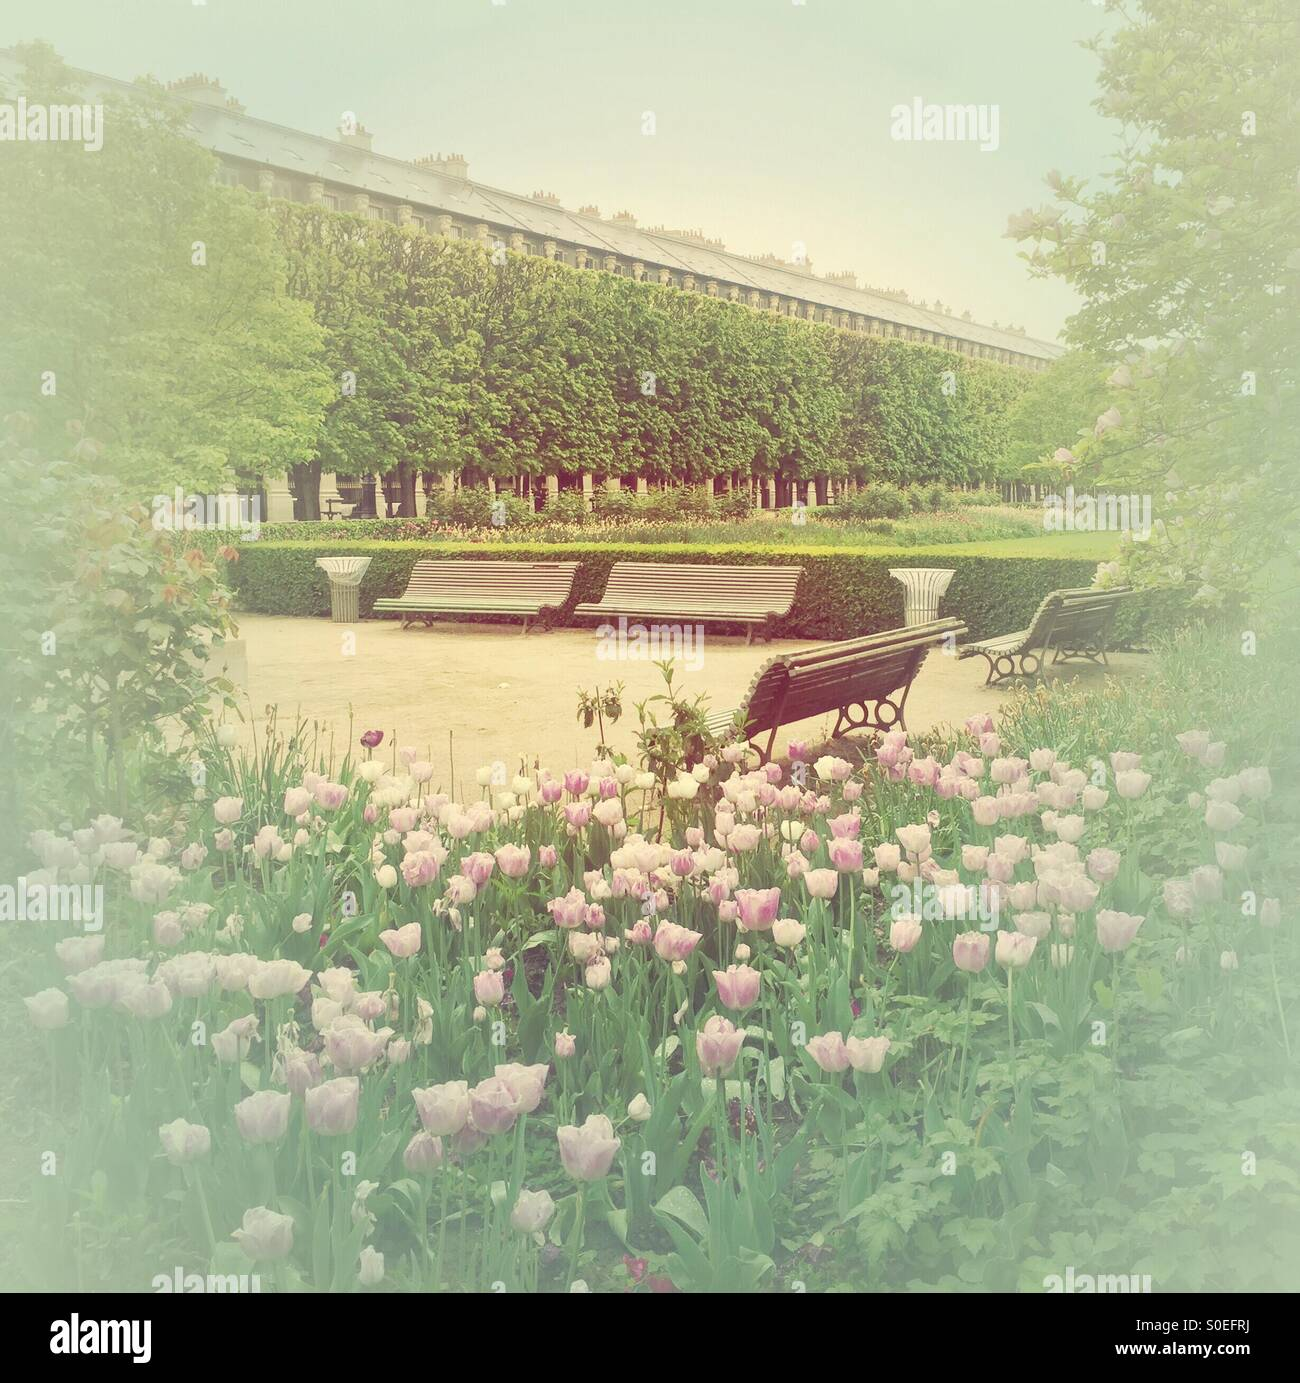 Pink tulips and benches at park Jardin du Palais-Royal in Paris, France. Warm, retro, faded look.Stock Photo